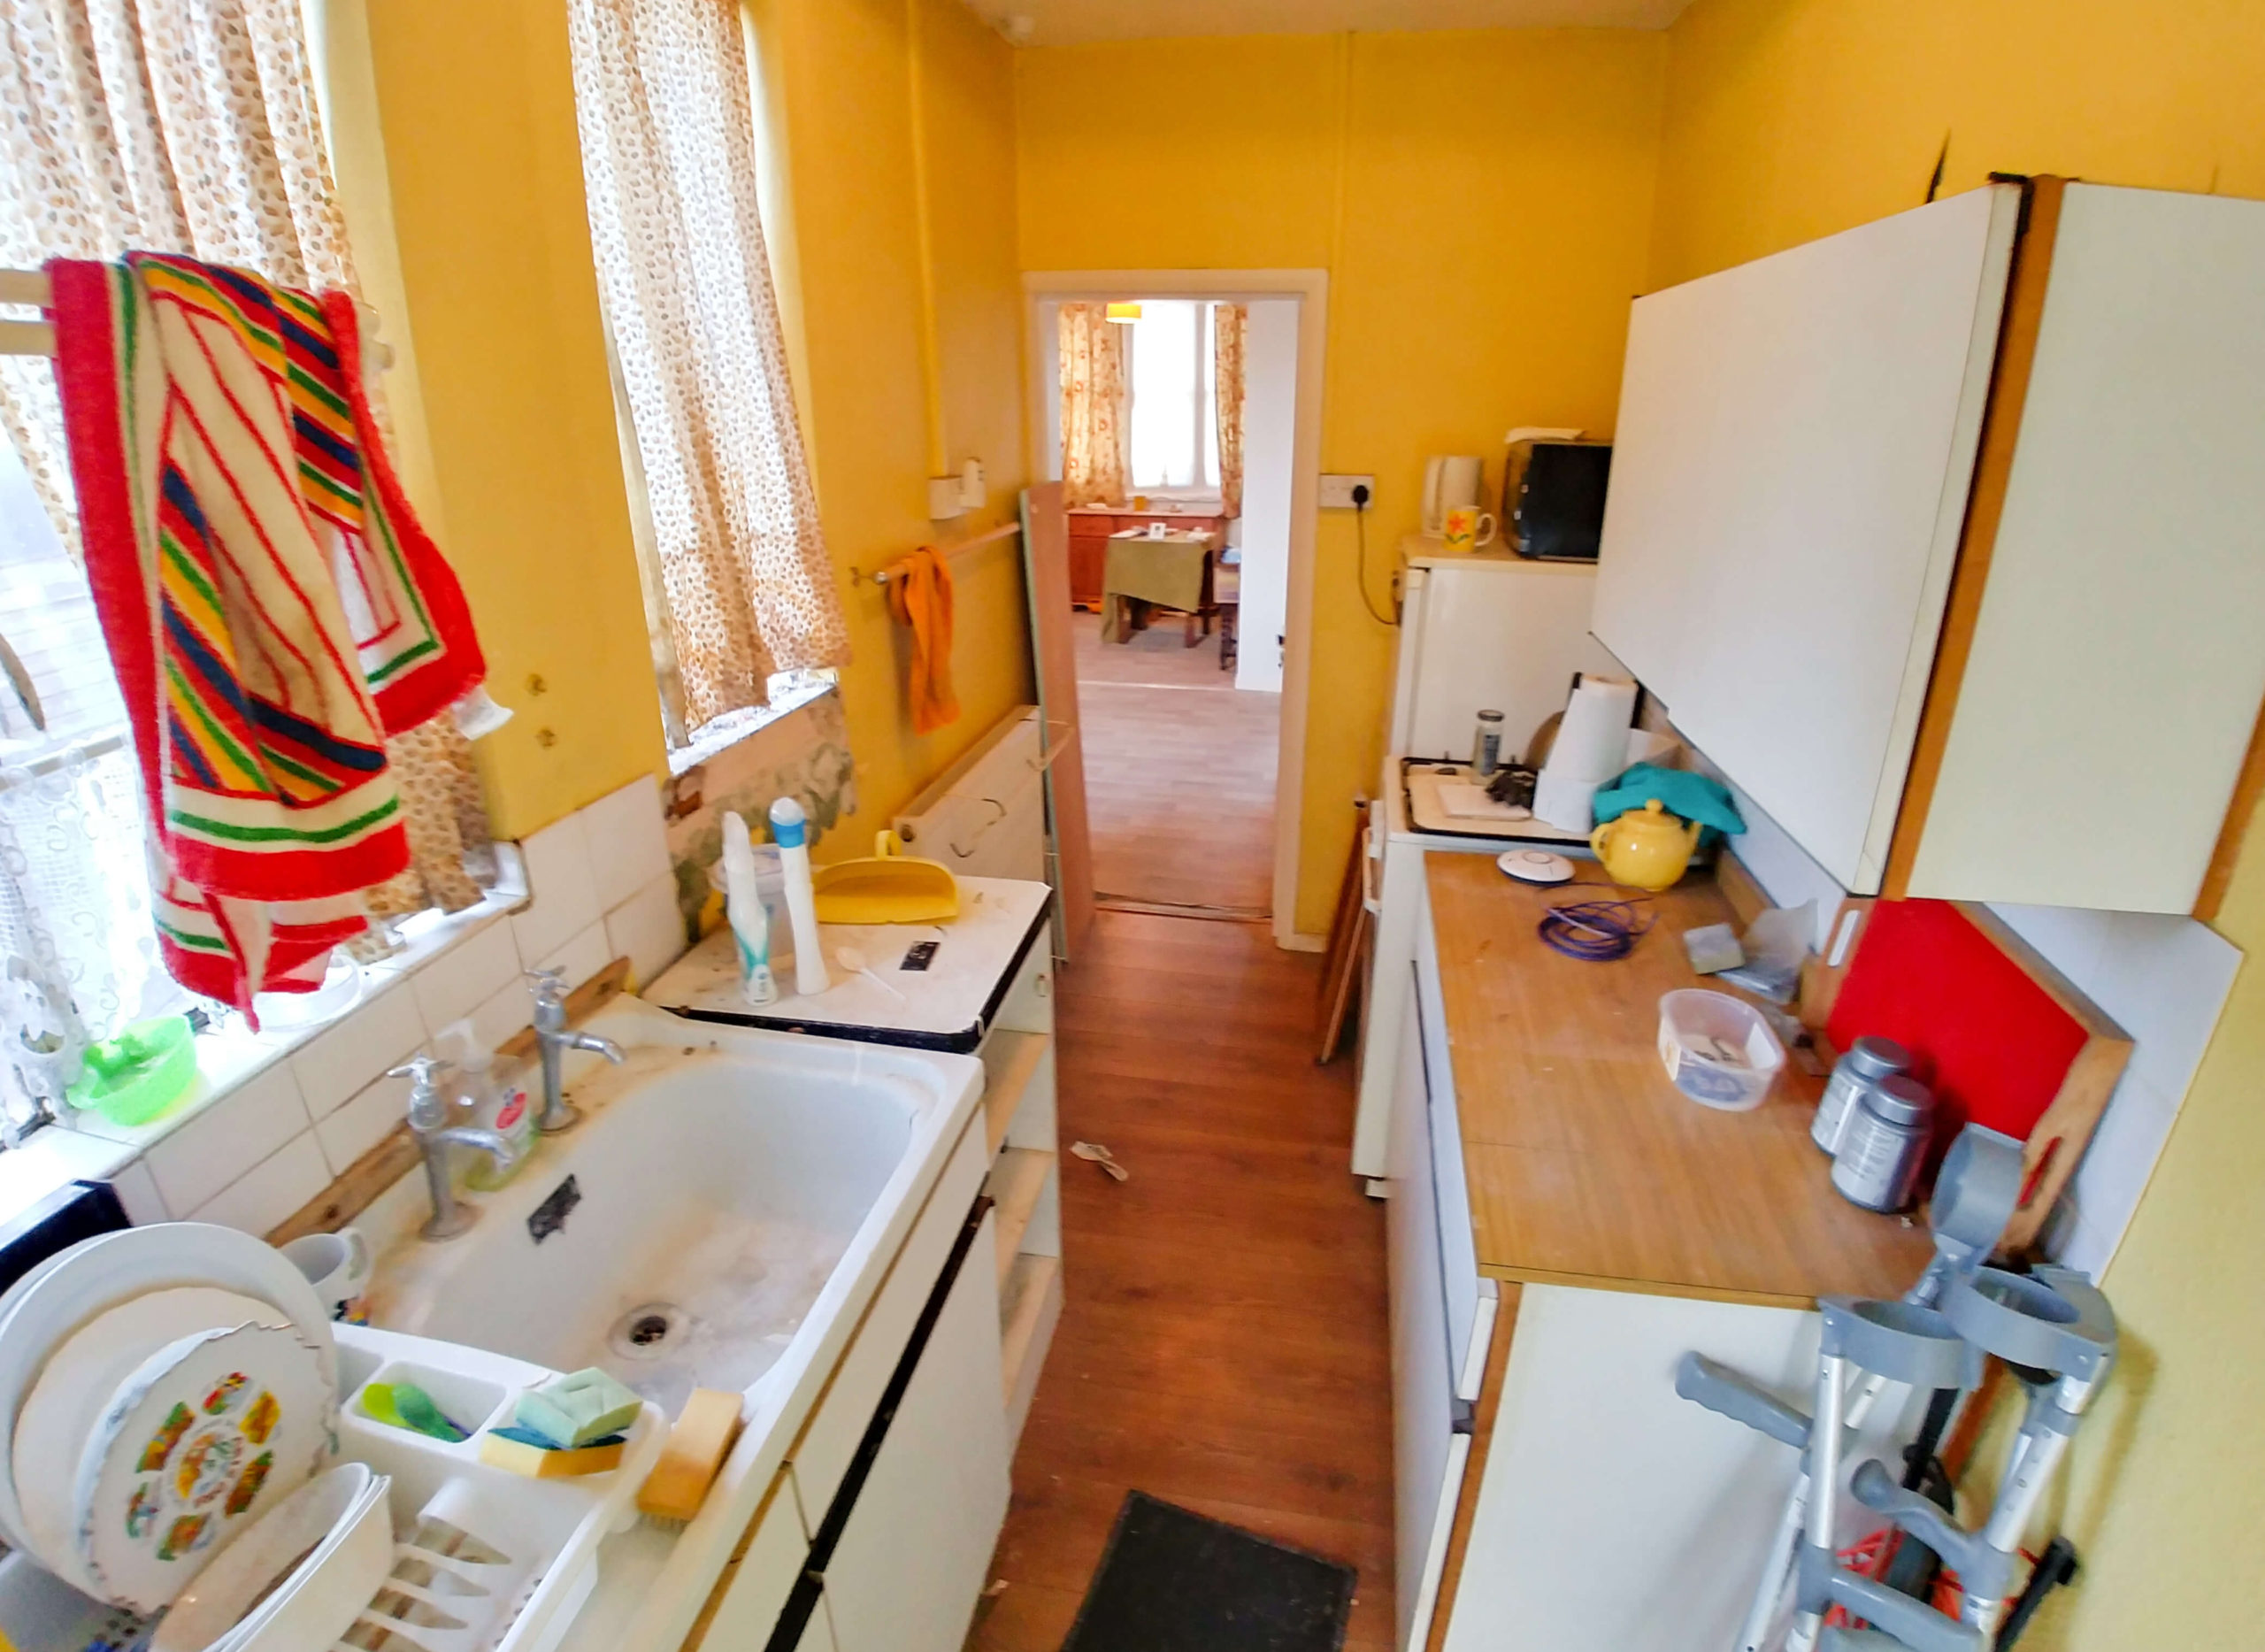 selling a house in need of modernisation at auction